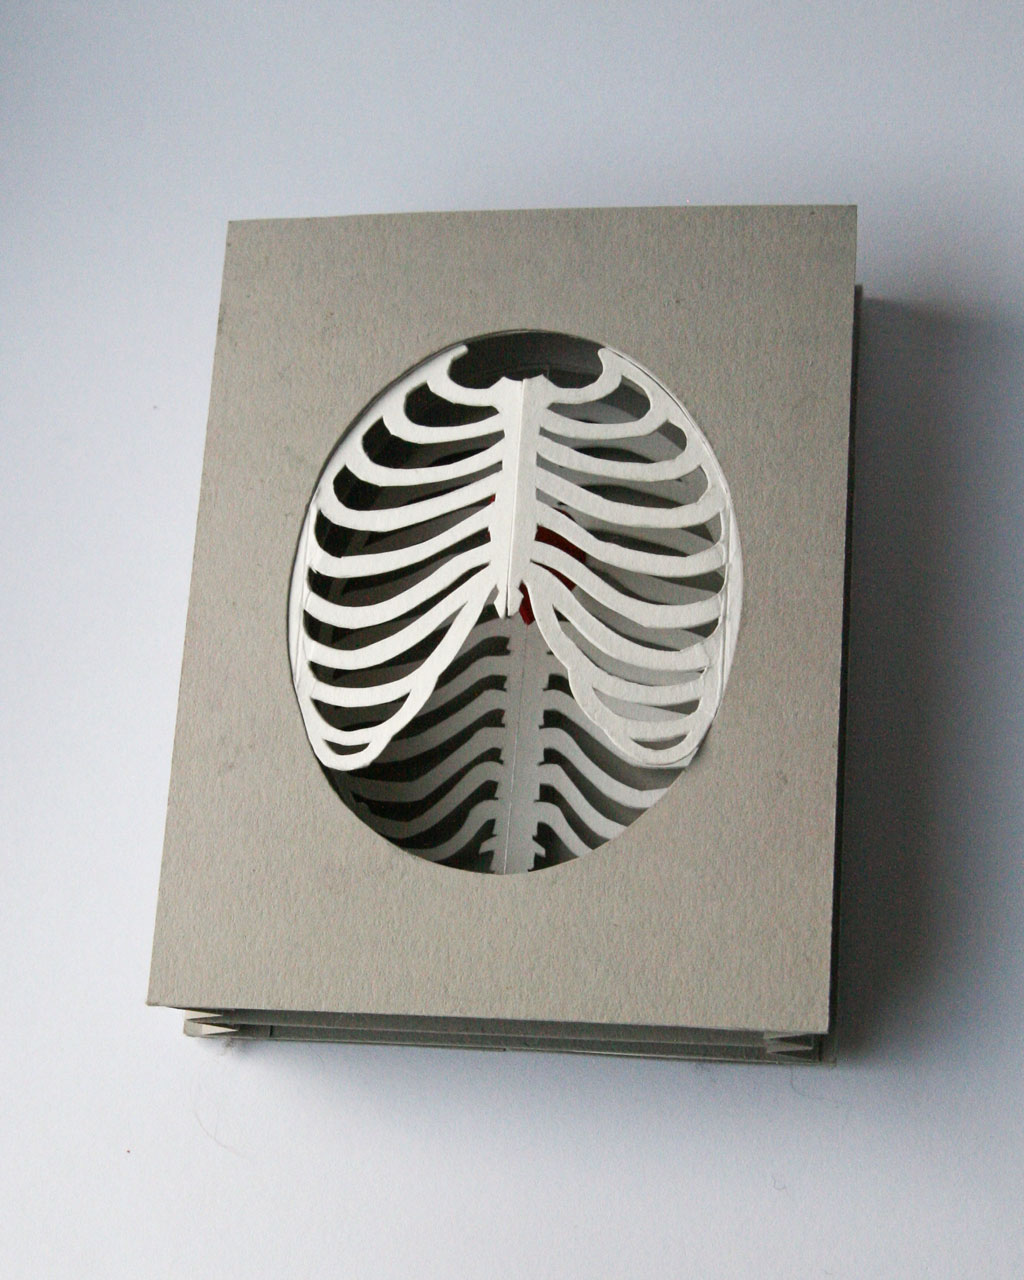 'Cardiothoracic' tunnel book/card: closed flat